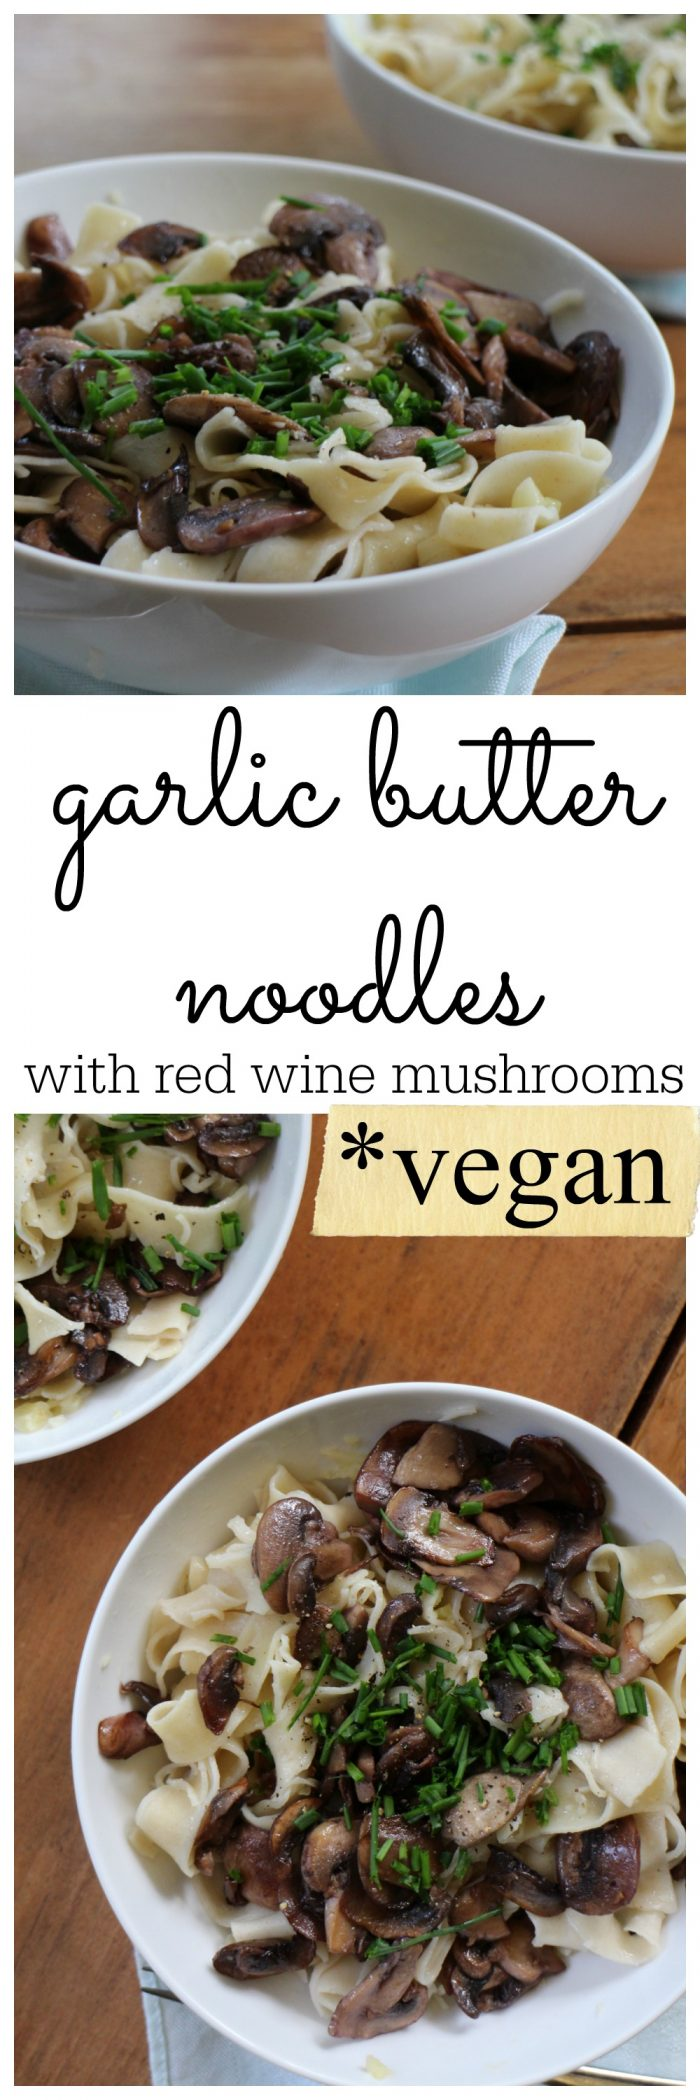 Nothing beats the coziness of garlic butter noodles with red wine mushrooms. Vegan & non-dairy | cadryskitchen.com